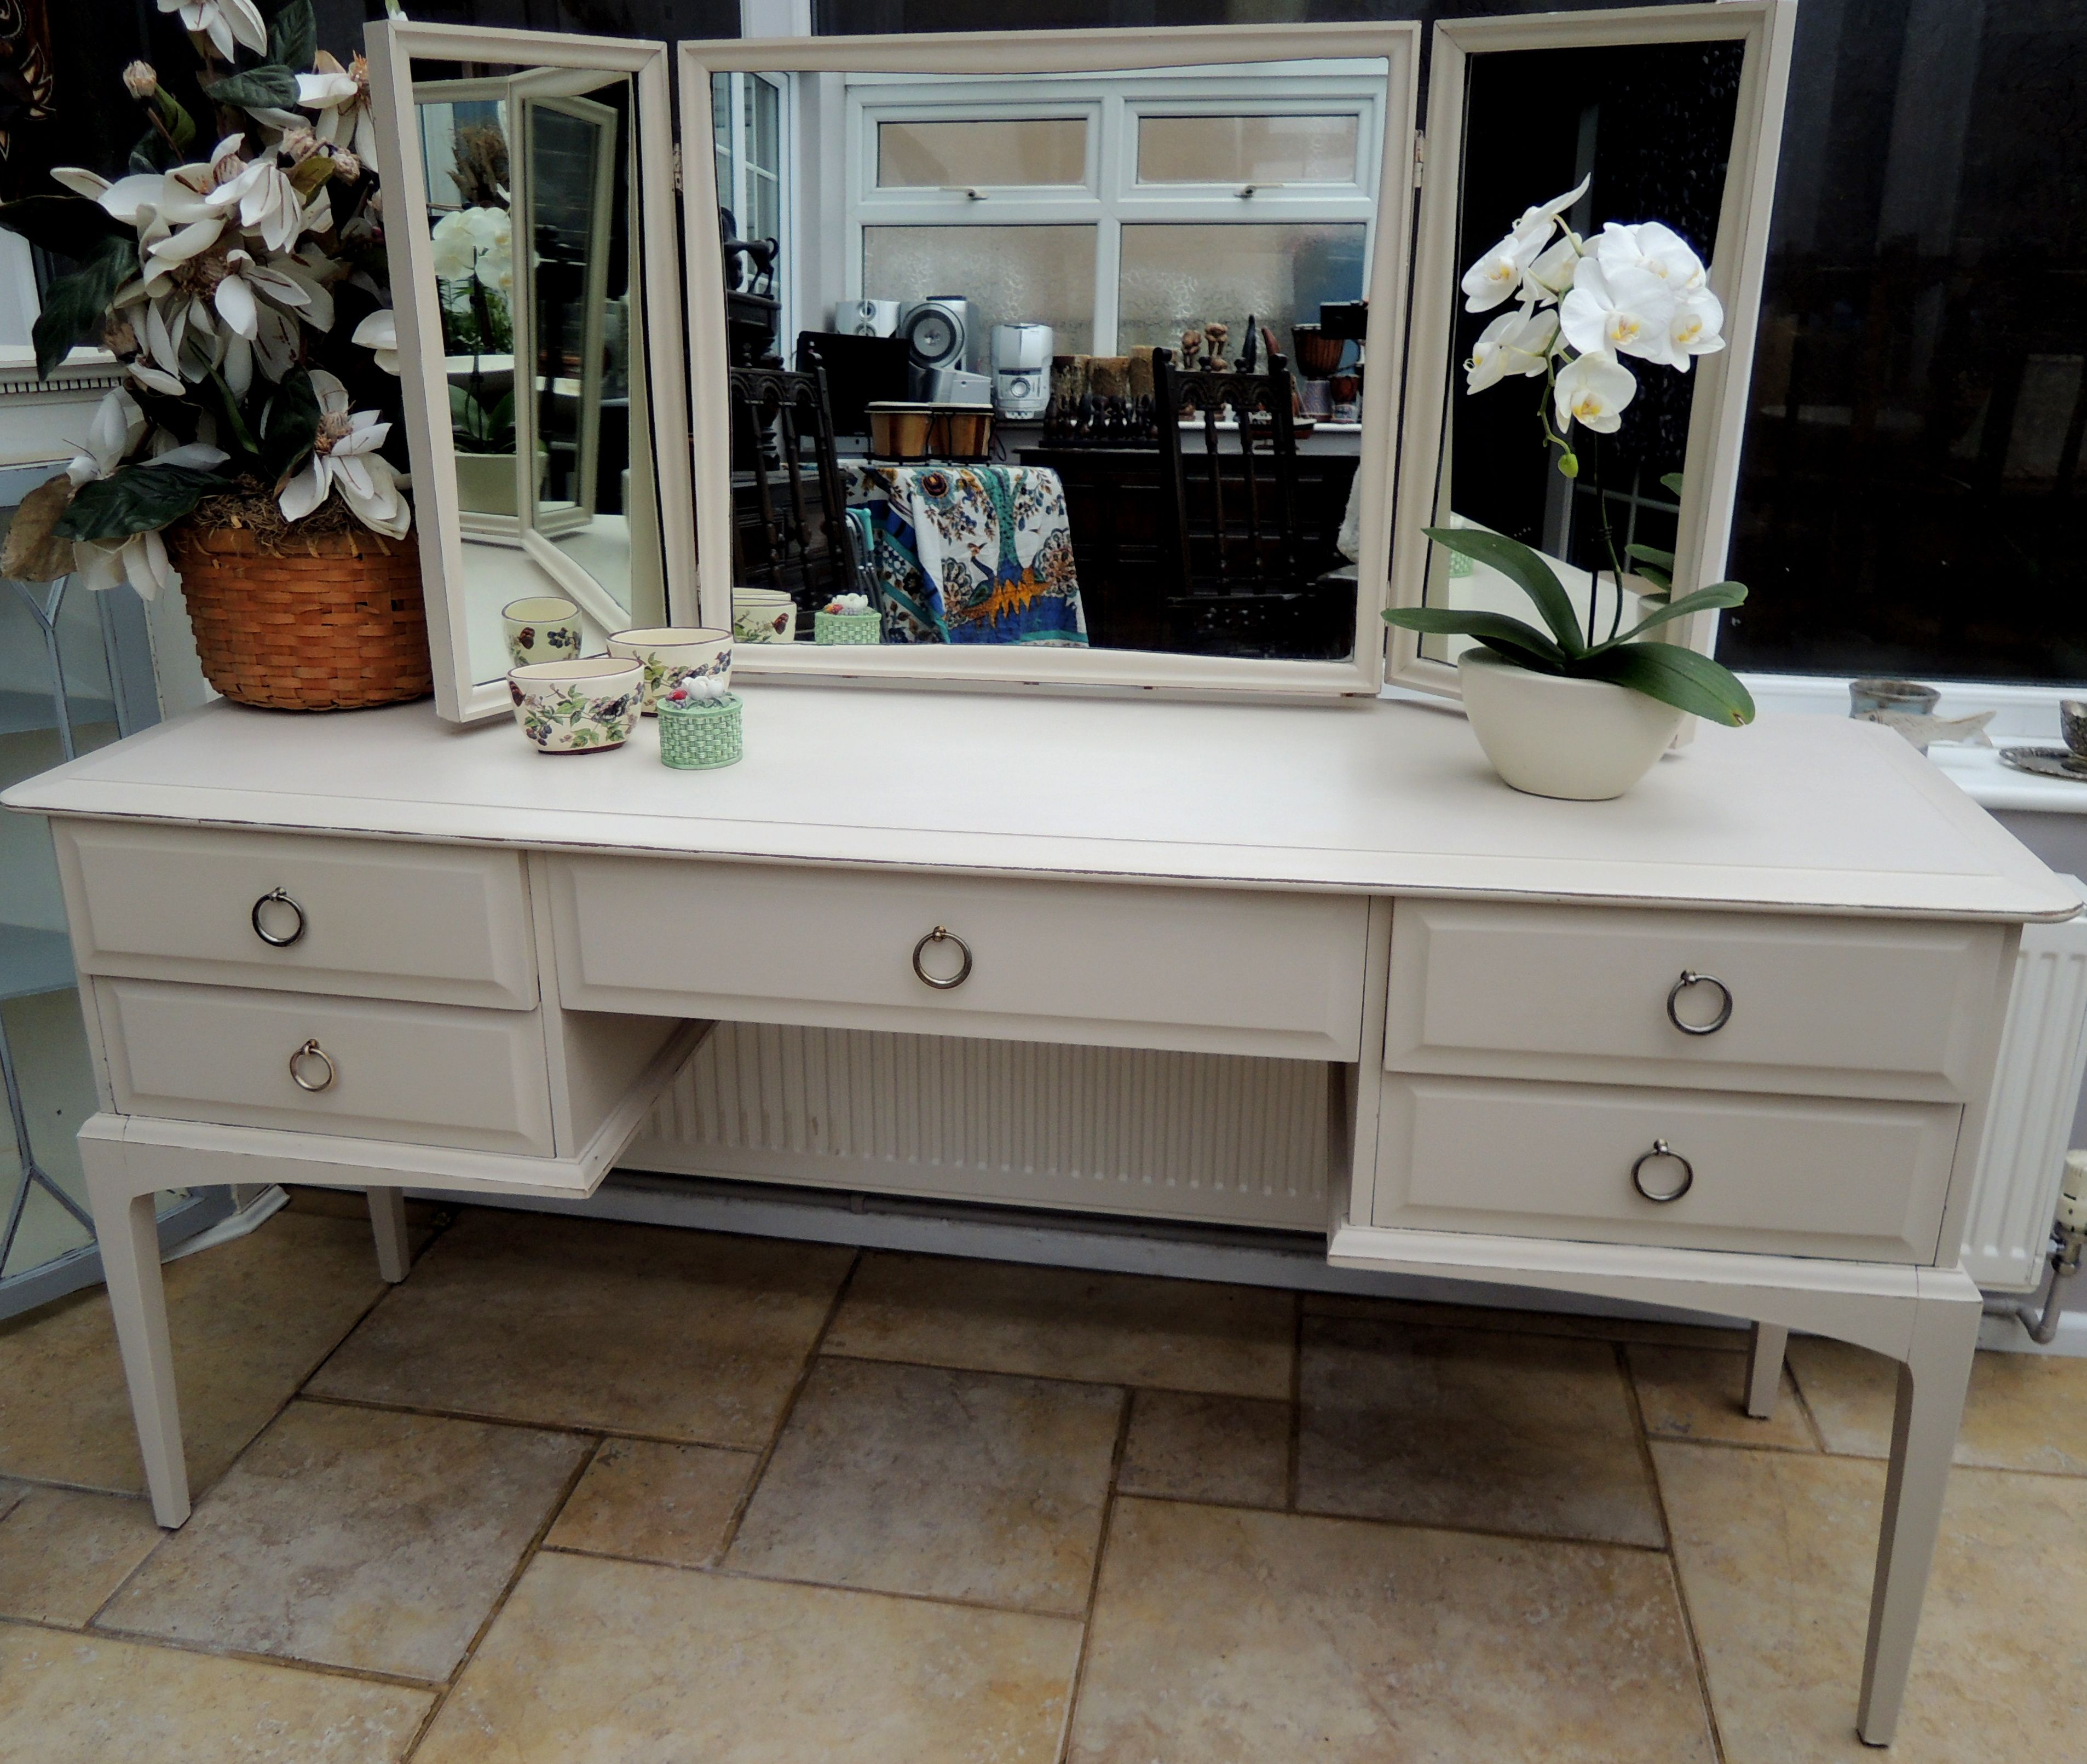 Second Hand Shabby Chic Bedroom Furniture Lovely Mahogany Stag Minstrel Dressing Table Shabby Chic For